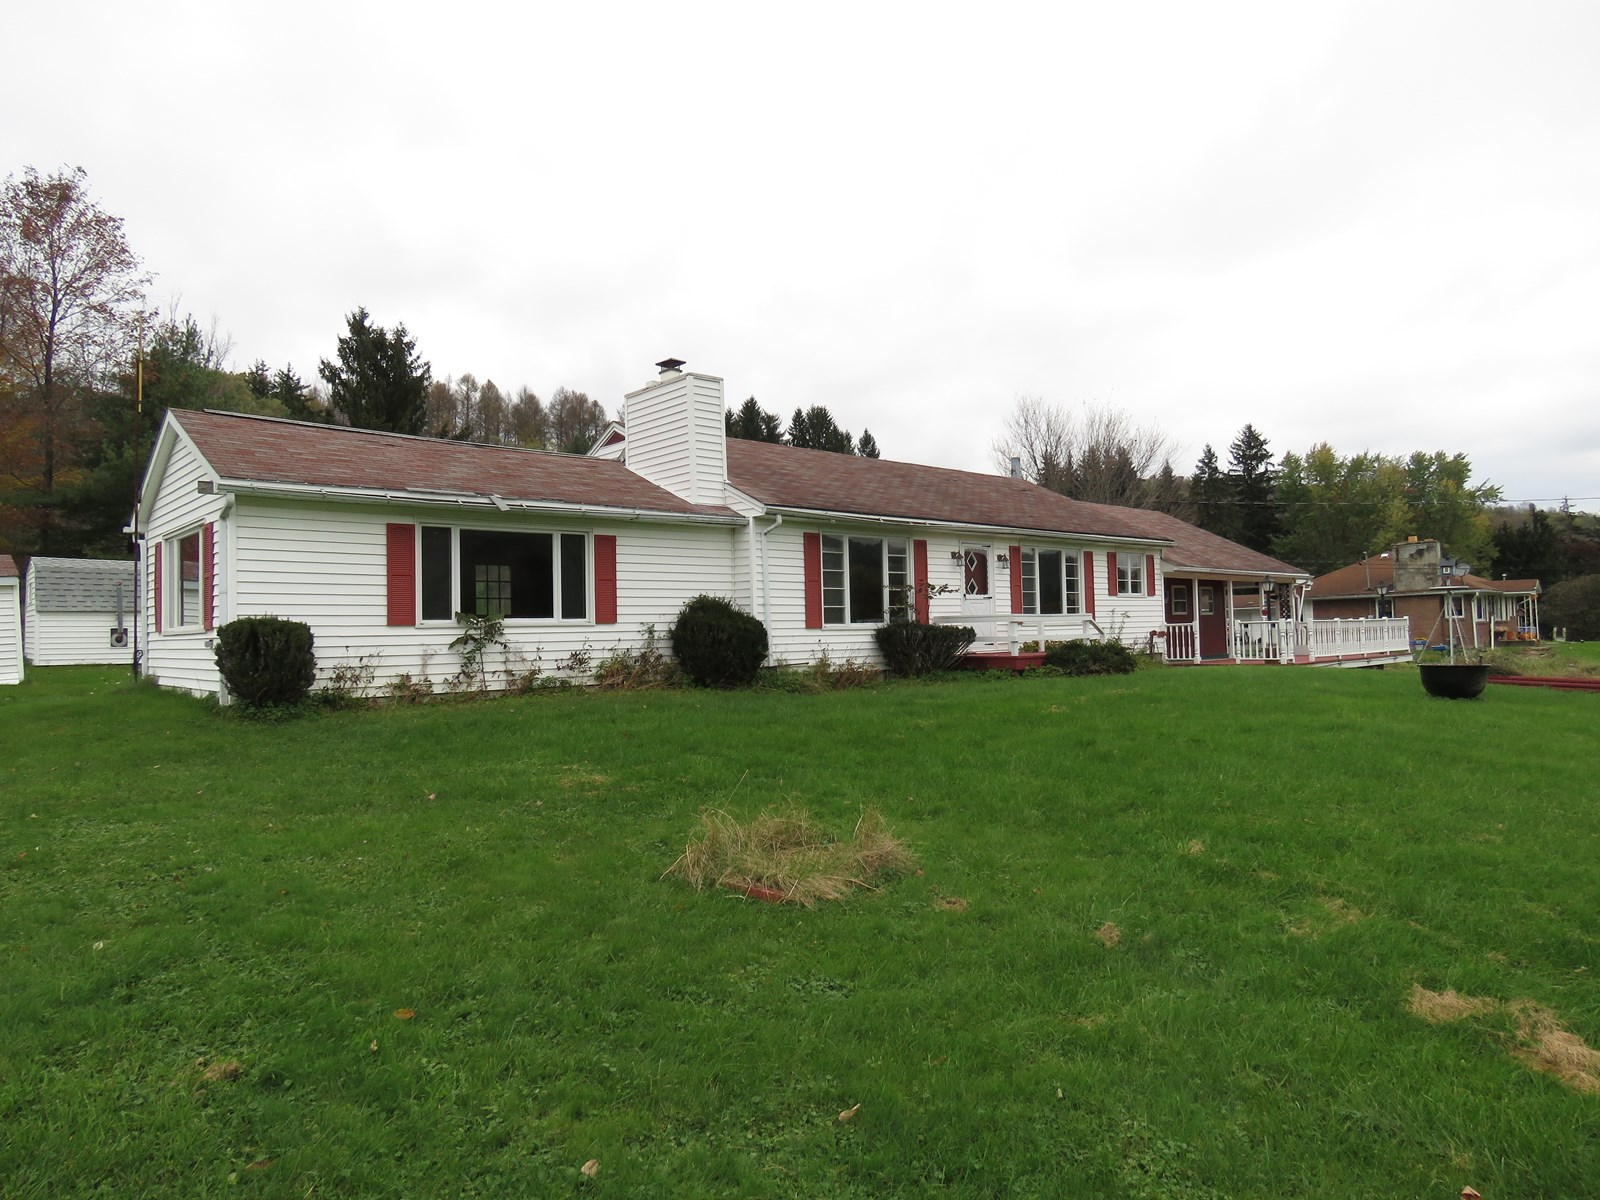 2 Bedroom Ranch in Tioga County, PA For Sale